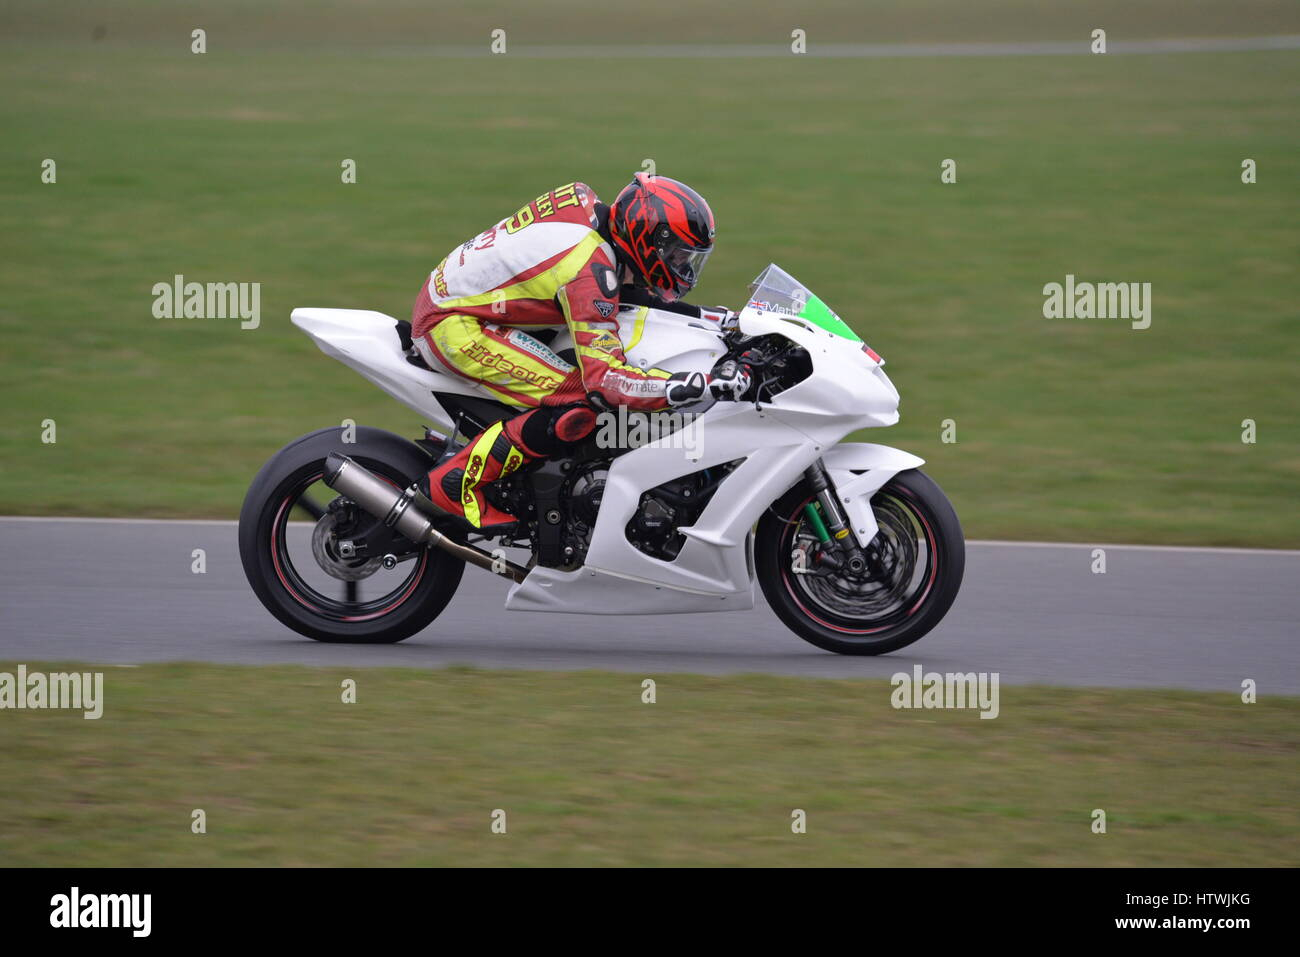 No Limits motorbike track day - Stock Image